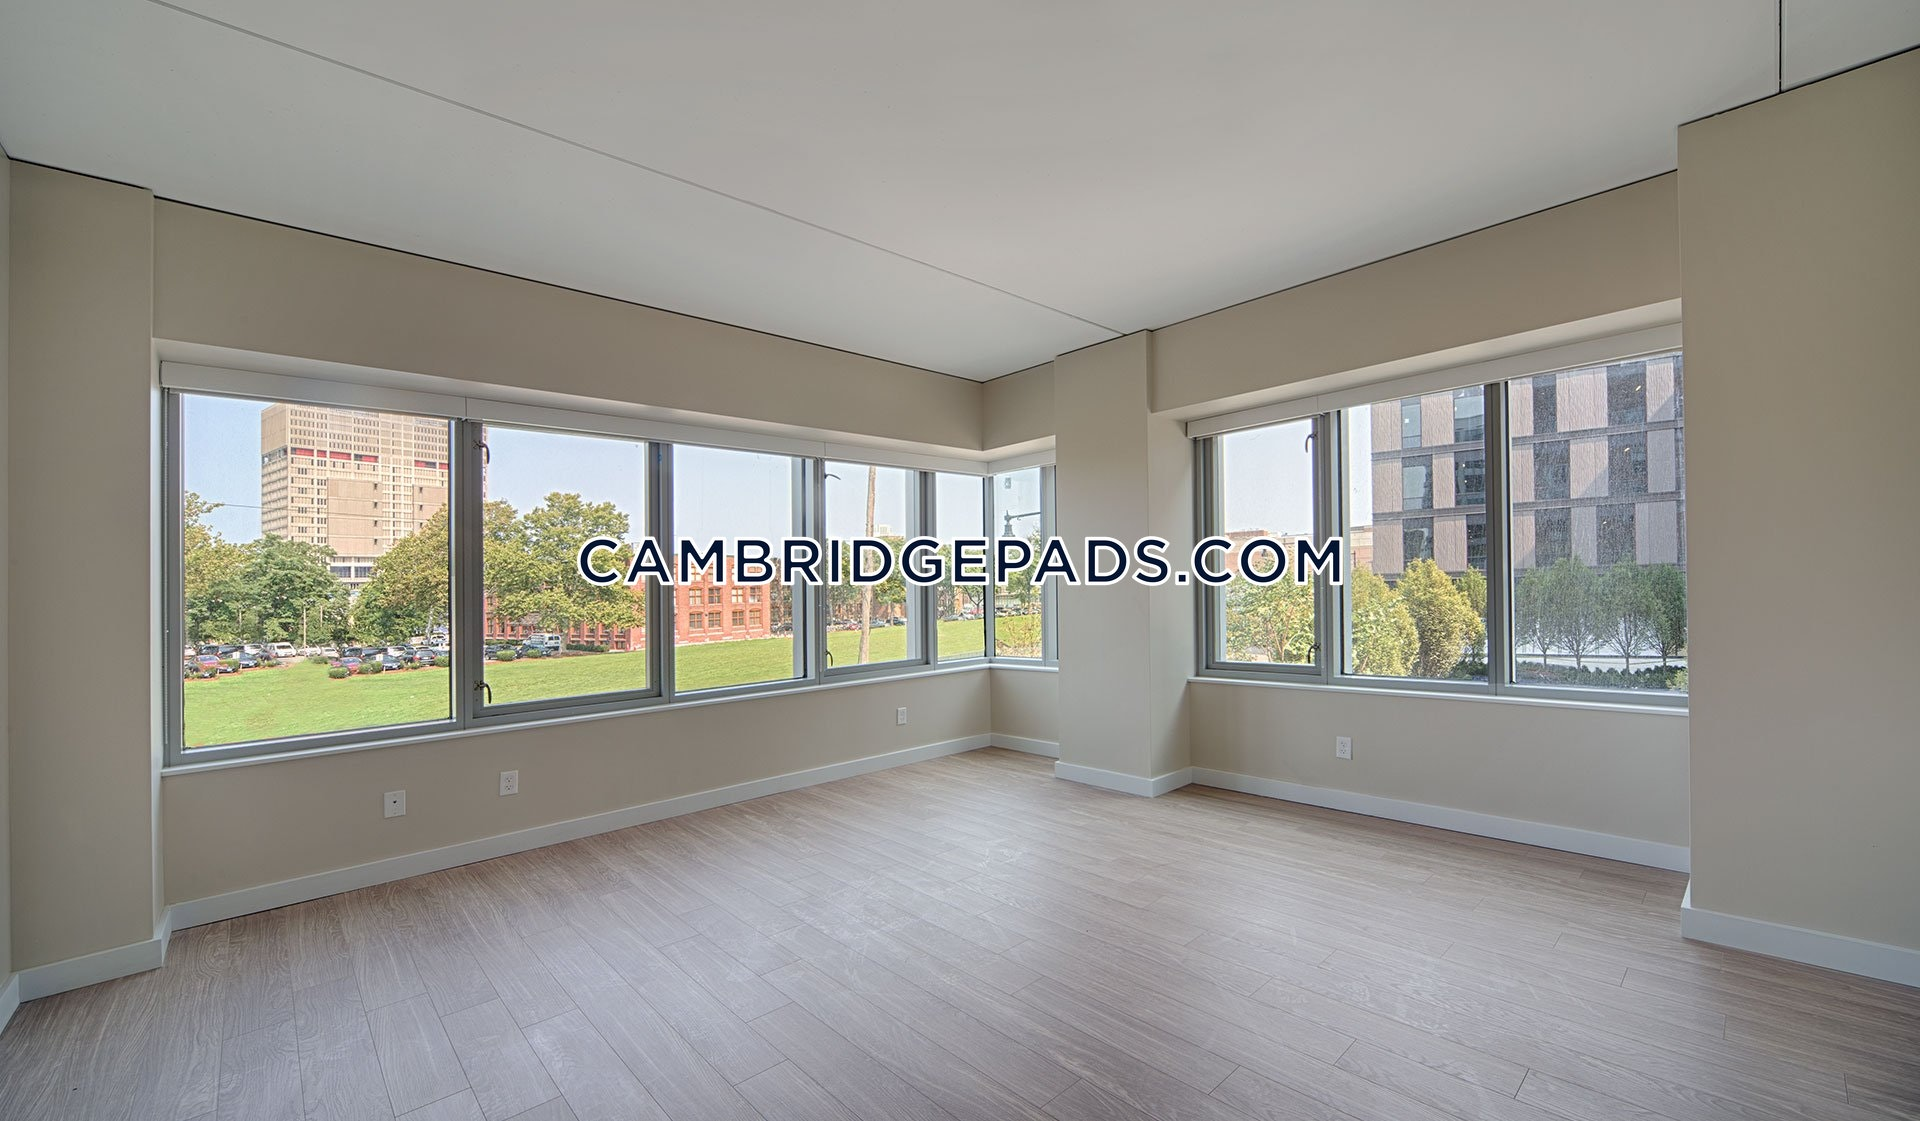 CAMBRIDGE - KENDALL SQUARE - $3,745